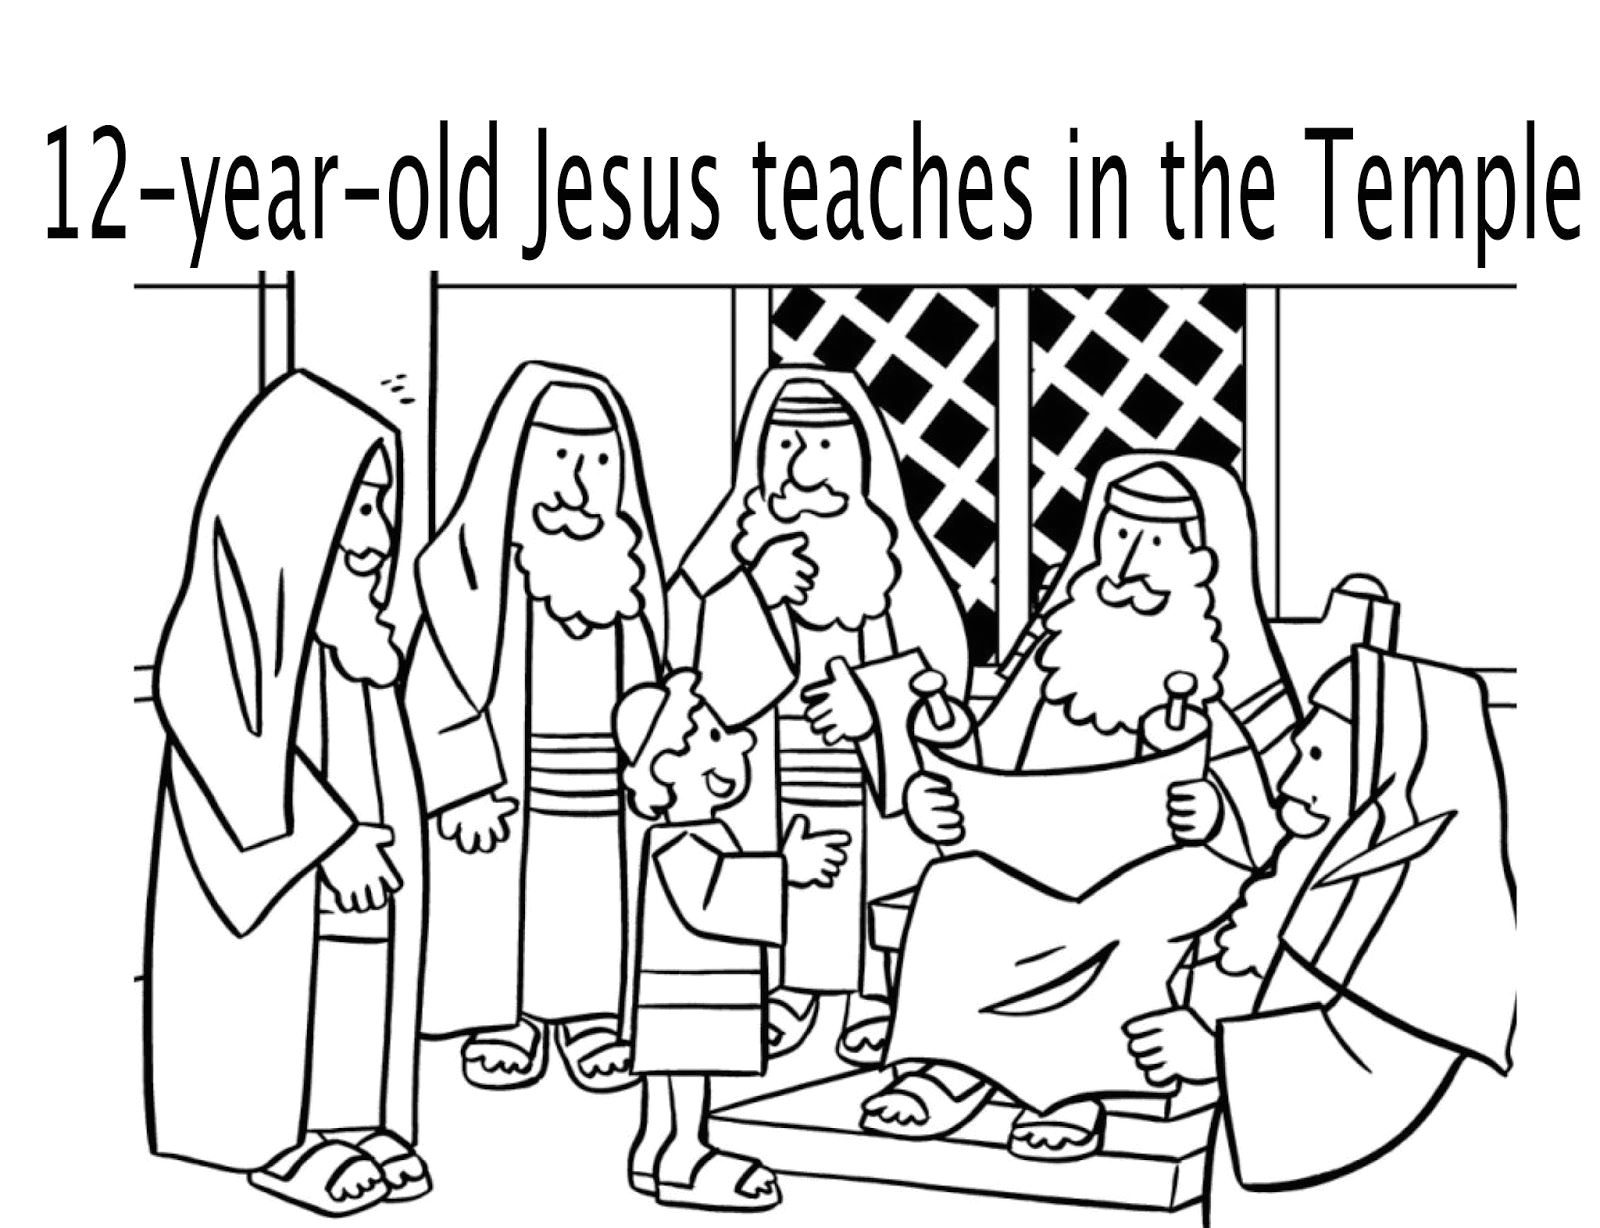 Jesus In the Temple at 12 Years Old Coloring Pages Boy Jesus Teaching In the Temple 12 Years Old Coloring